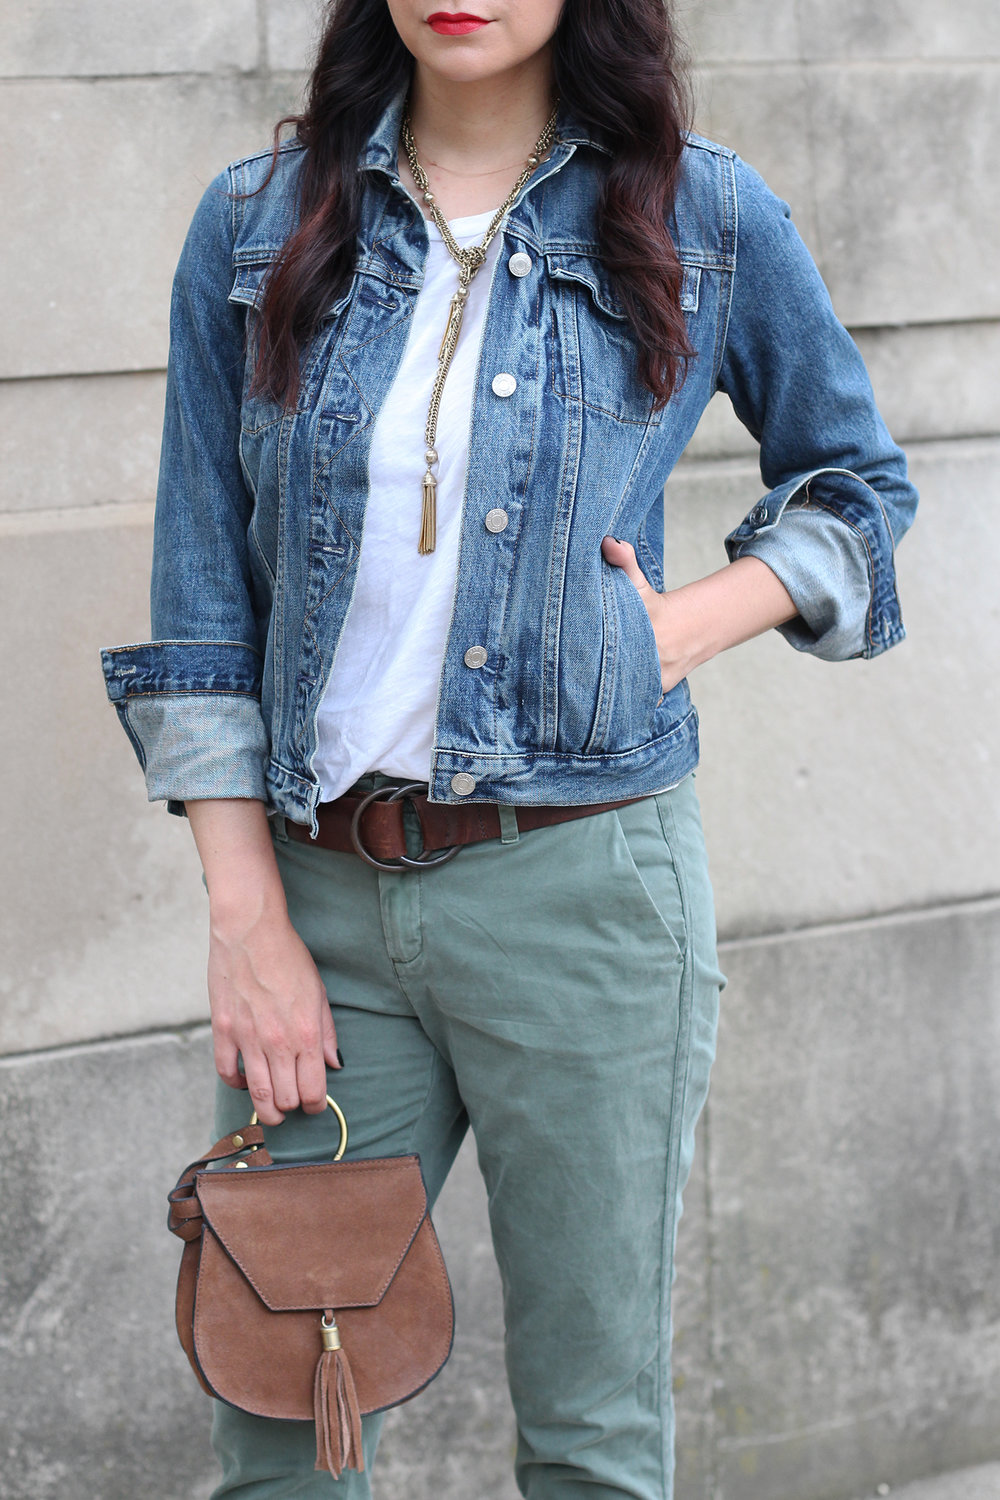 Jean Jacket Outfit Summer